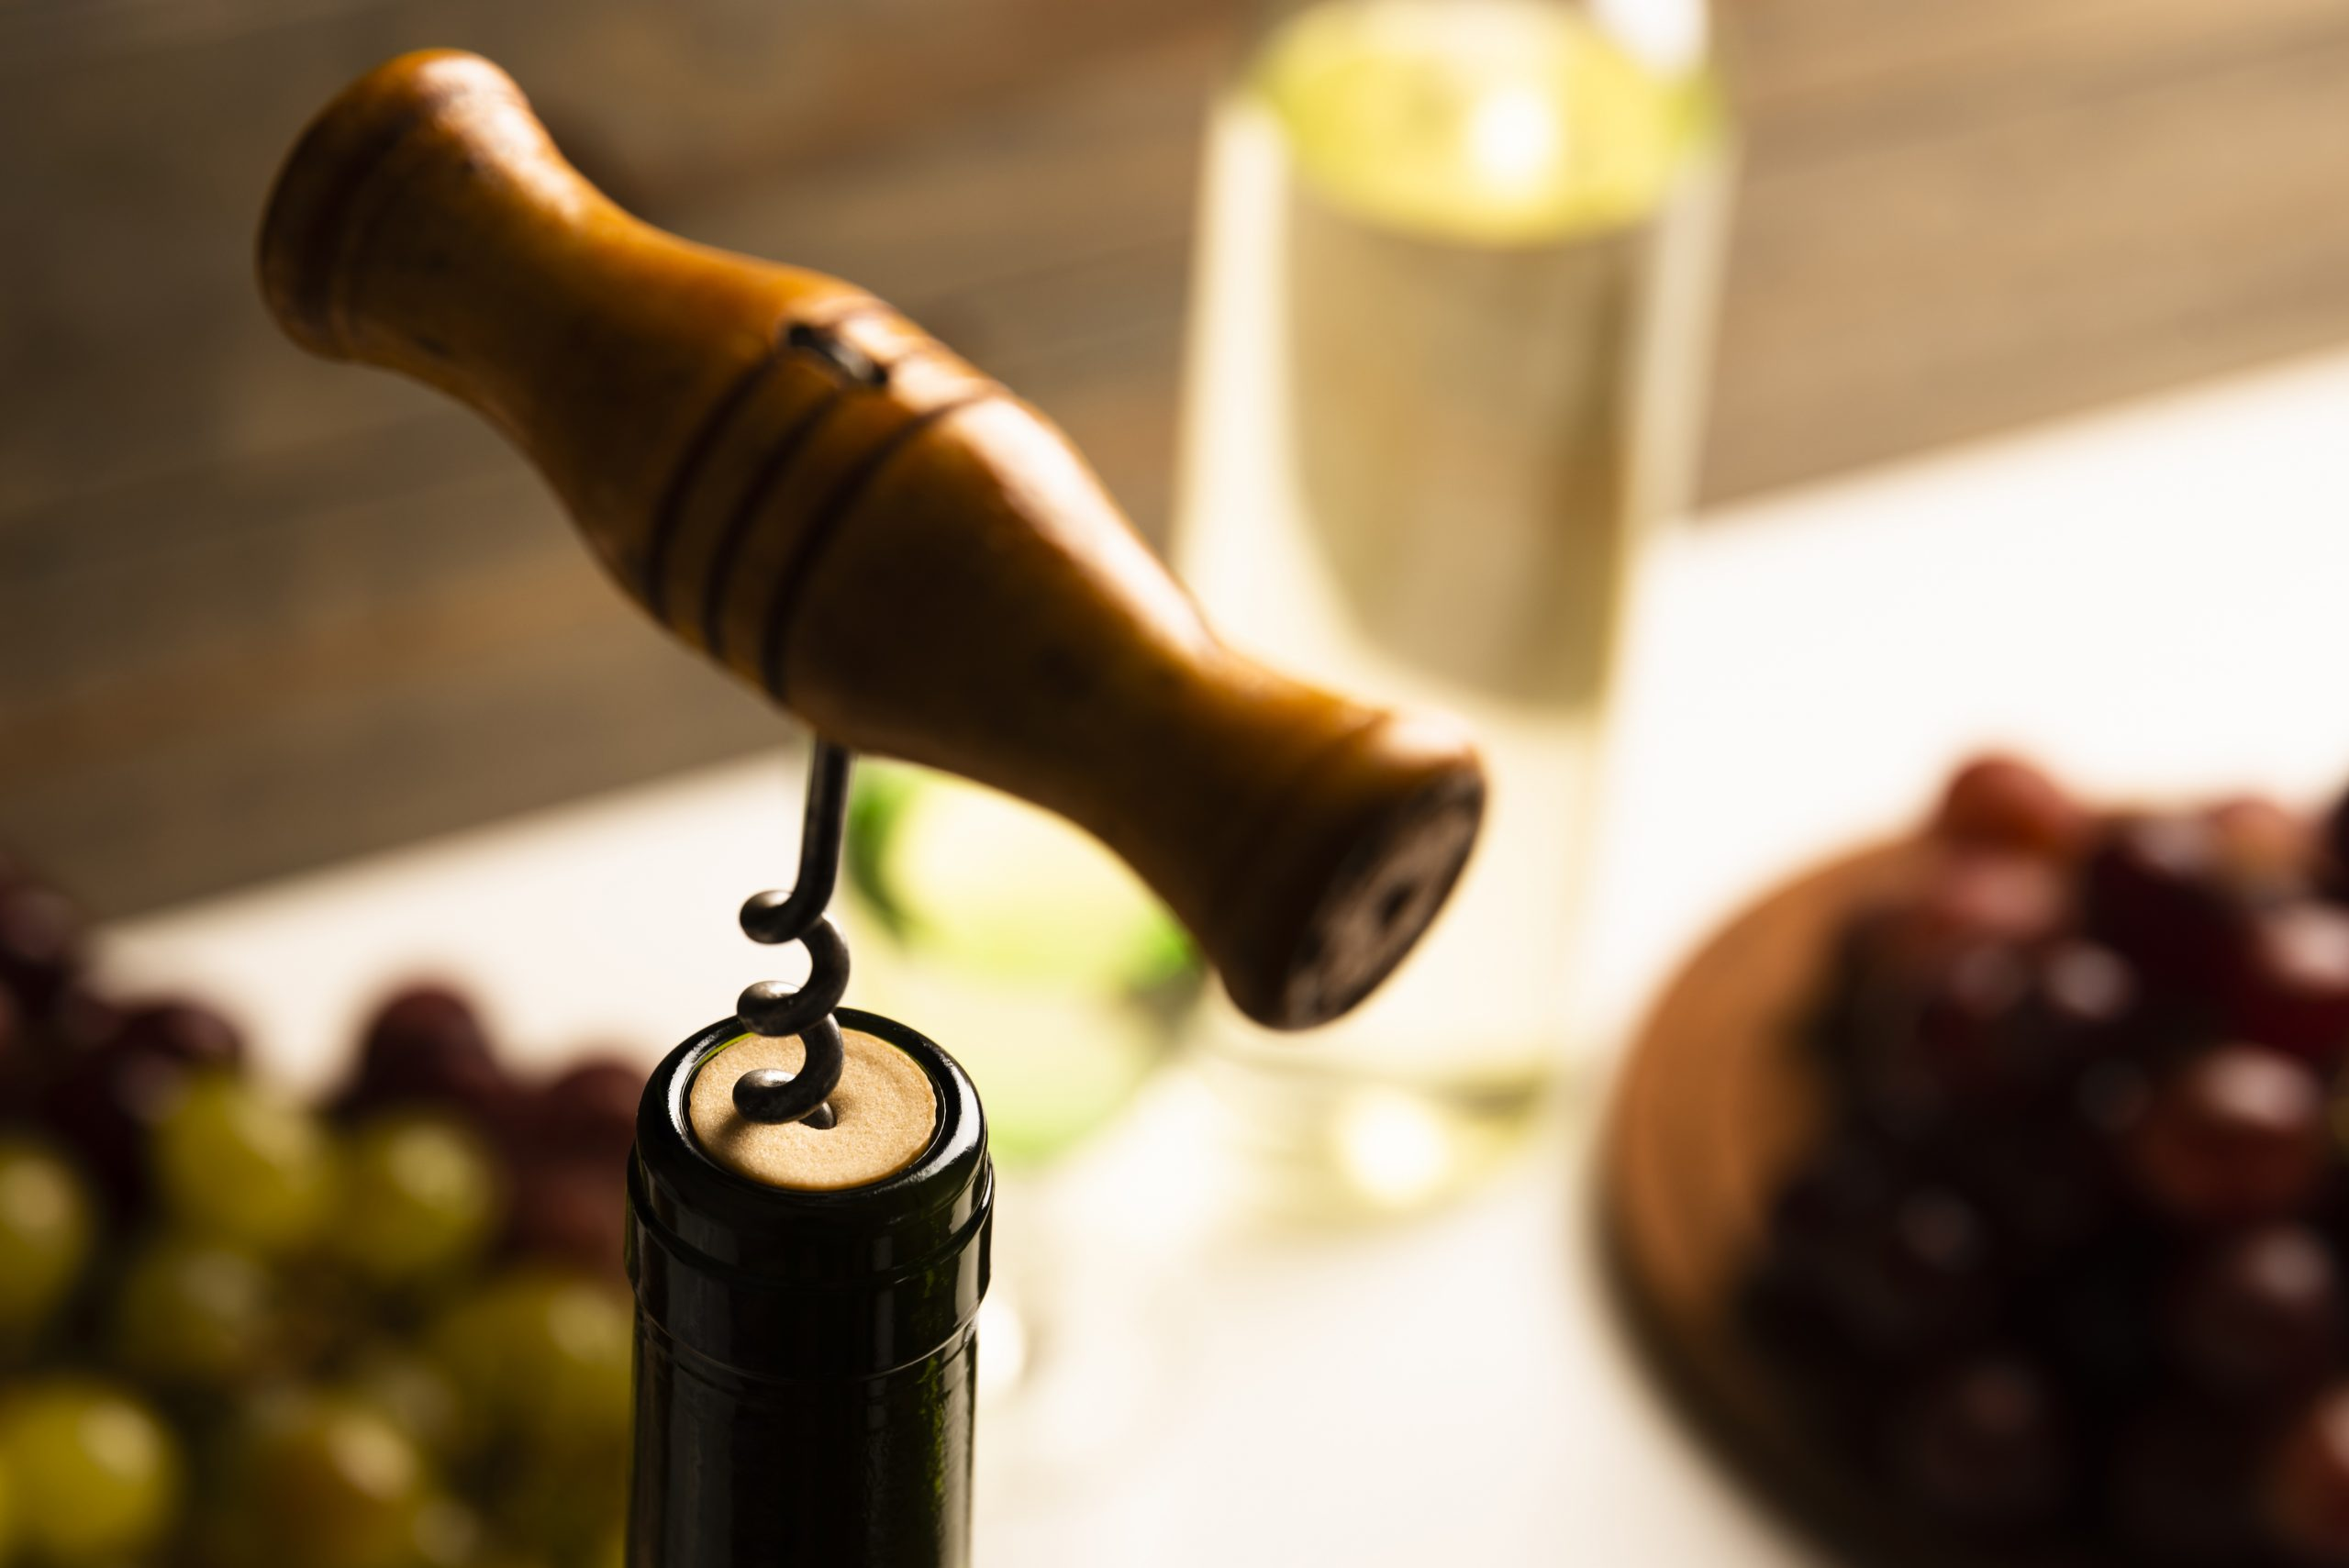 3 Tested Ways To Open A Wine Bottle Without A Corkscrew